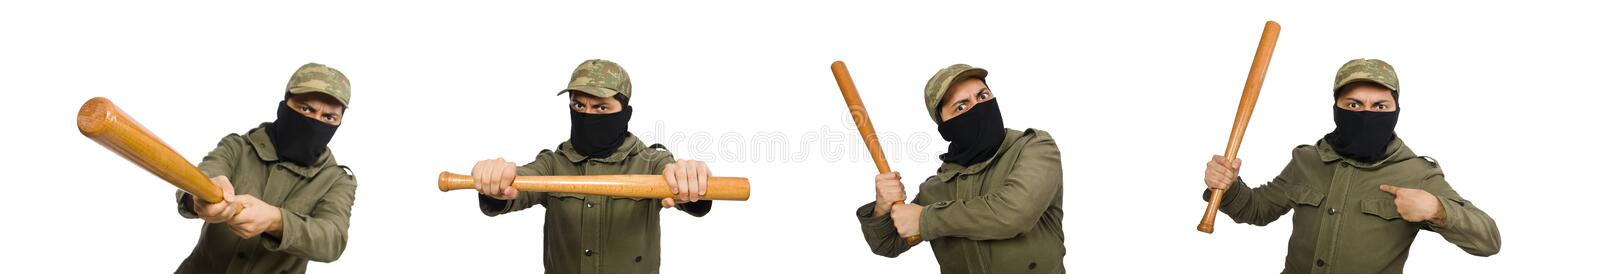 Funny man with baseball bat isolated on white royalty free stock images